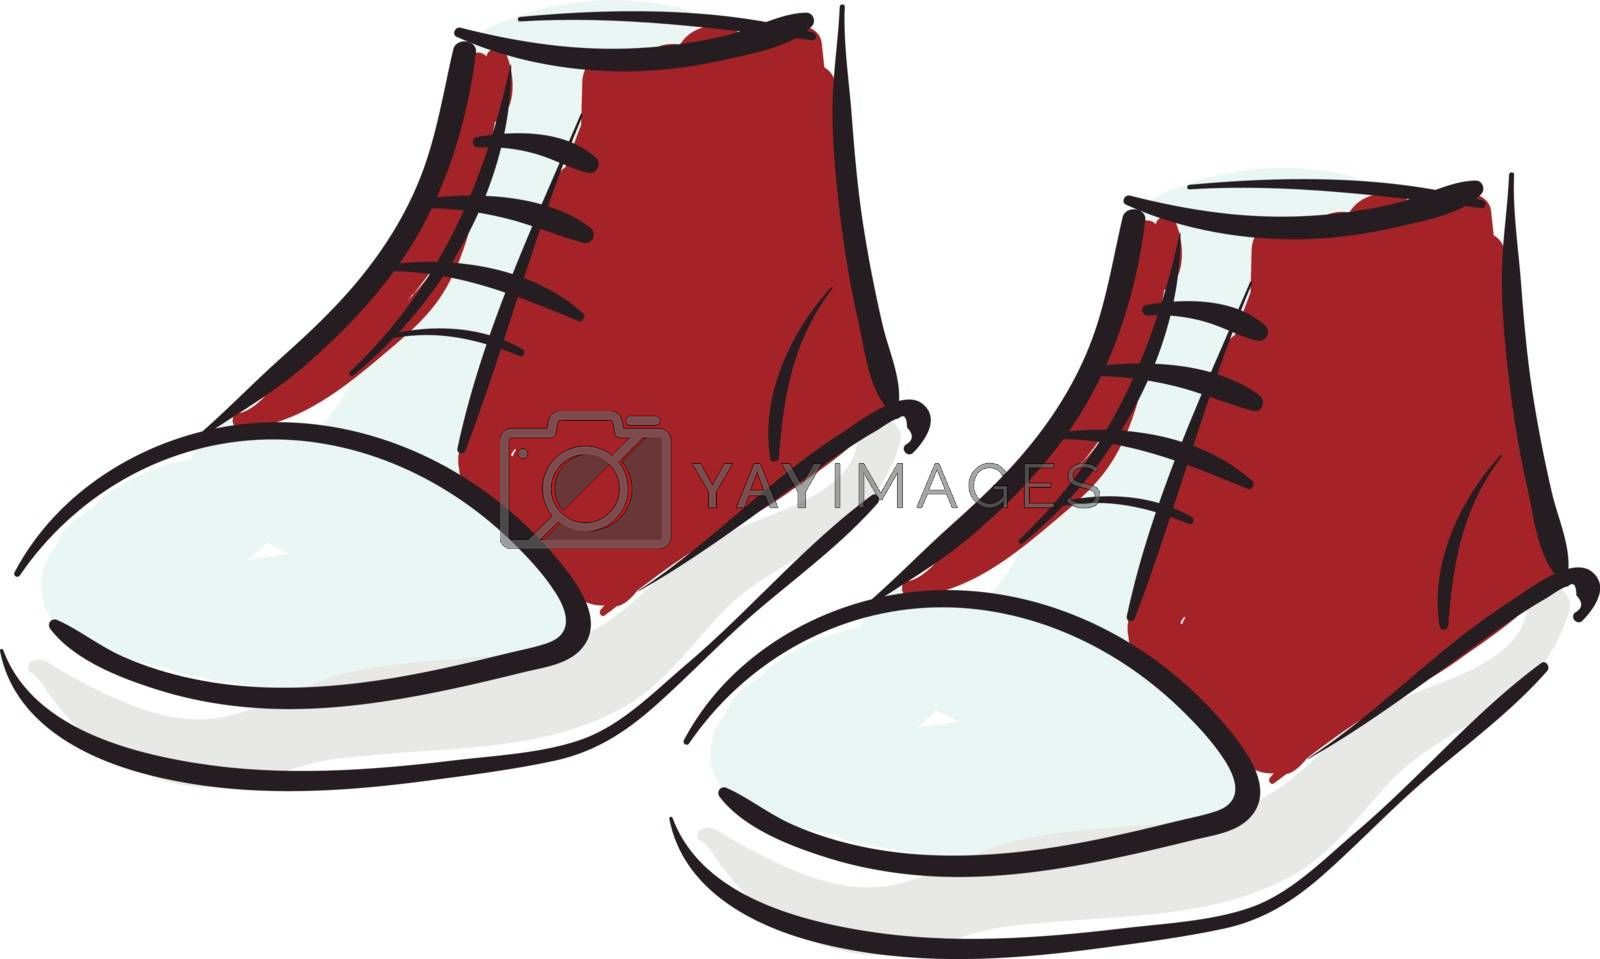 Royalty free image of Clipart of a pair of red-kids shoes vector or color illustration by Morphart